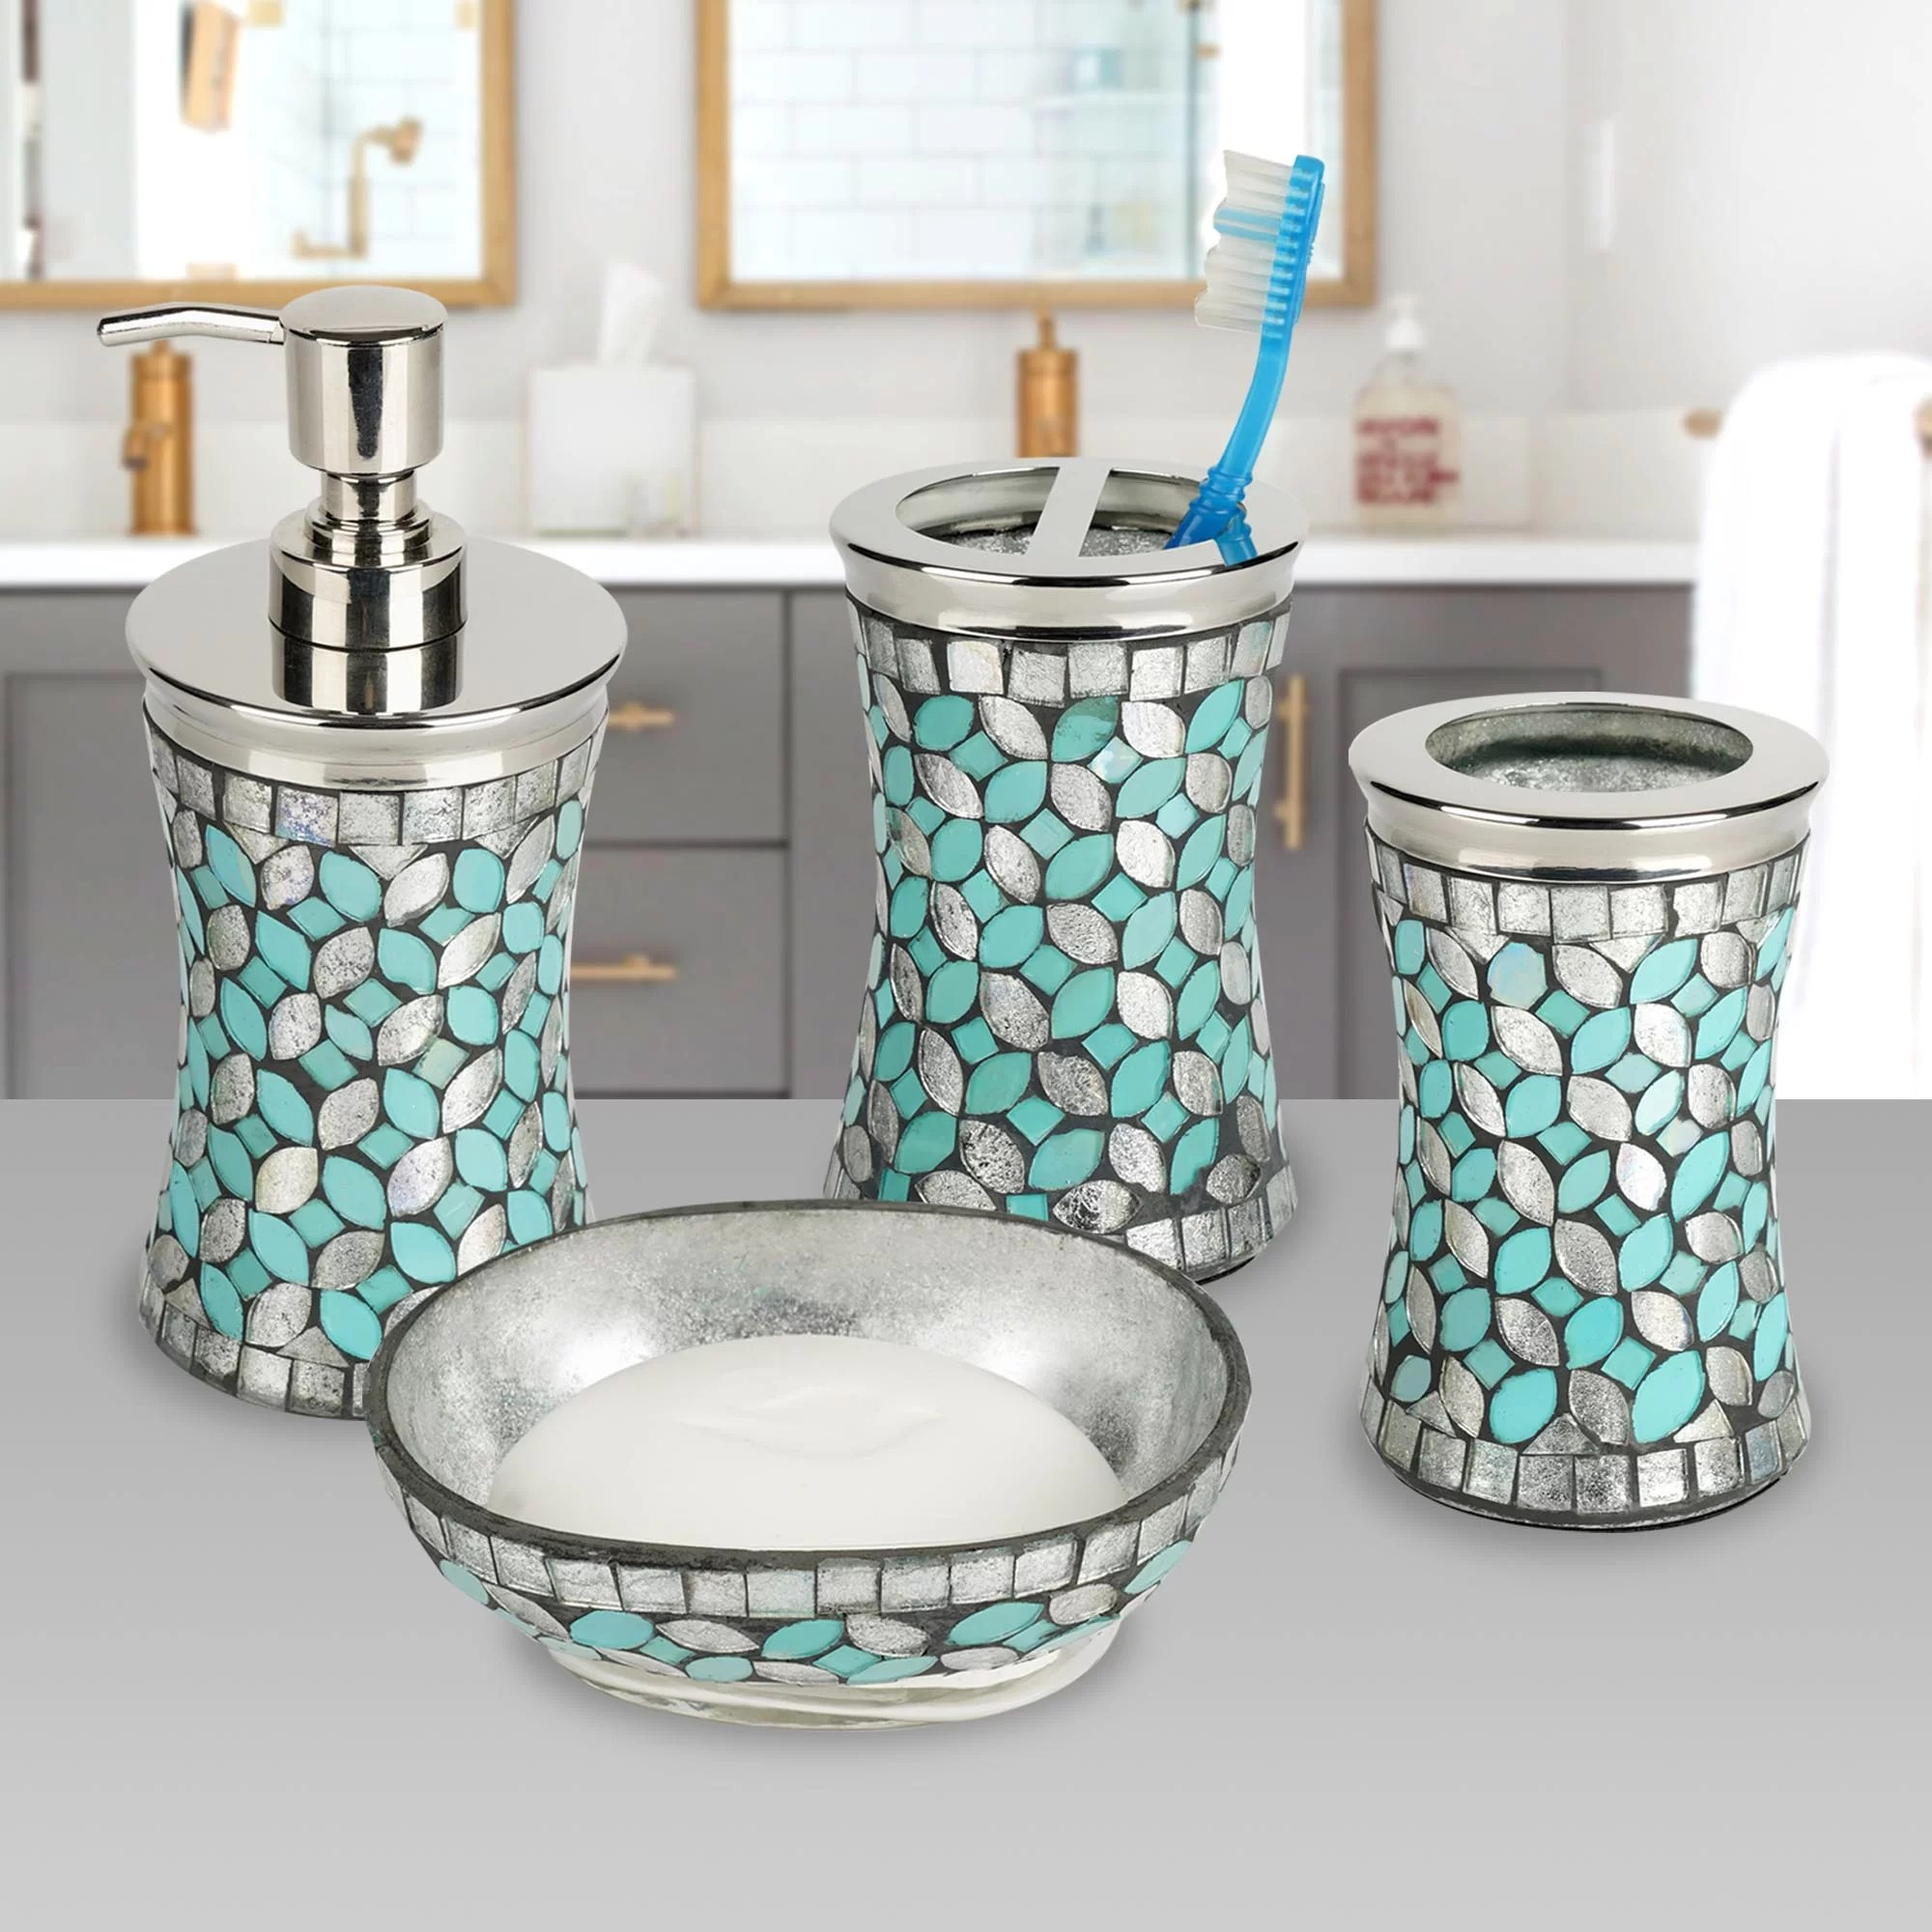 Highland Dunes Allsop 4 Piece Bathroom Accessory Set Reviews Wayfair